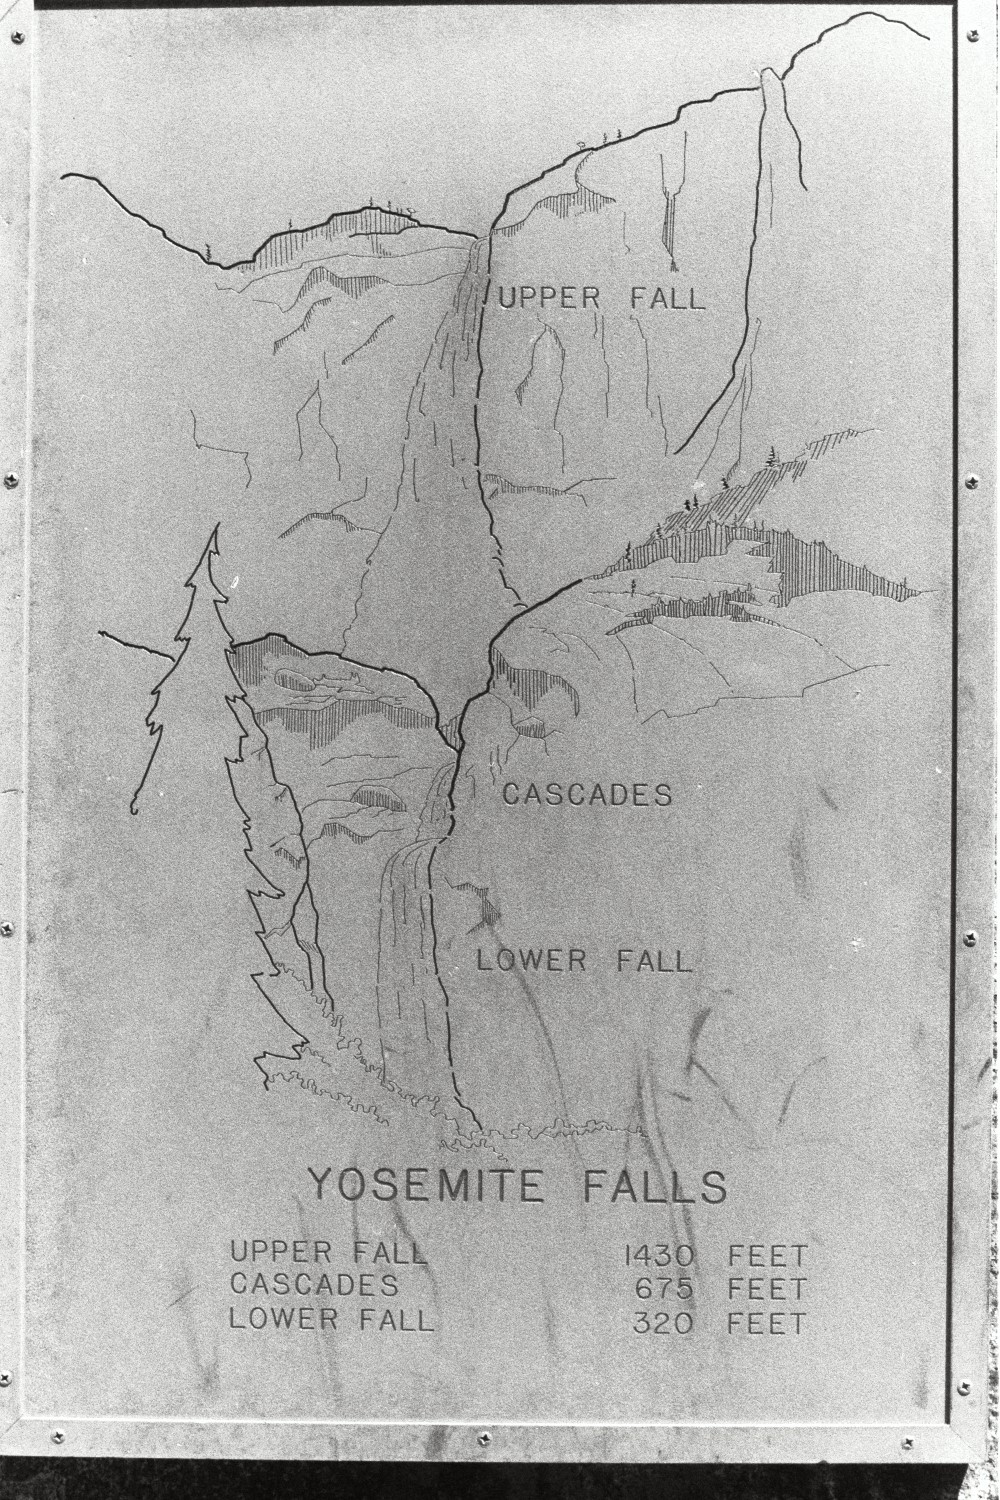 Map in Yosemite, in the late 1970s. California USA